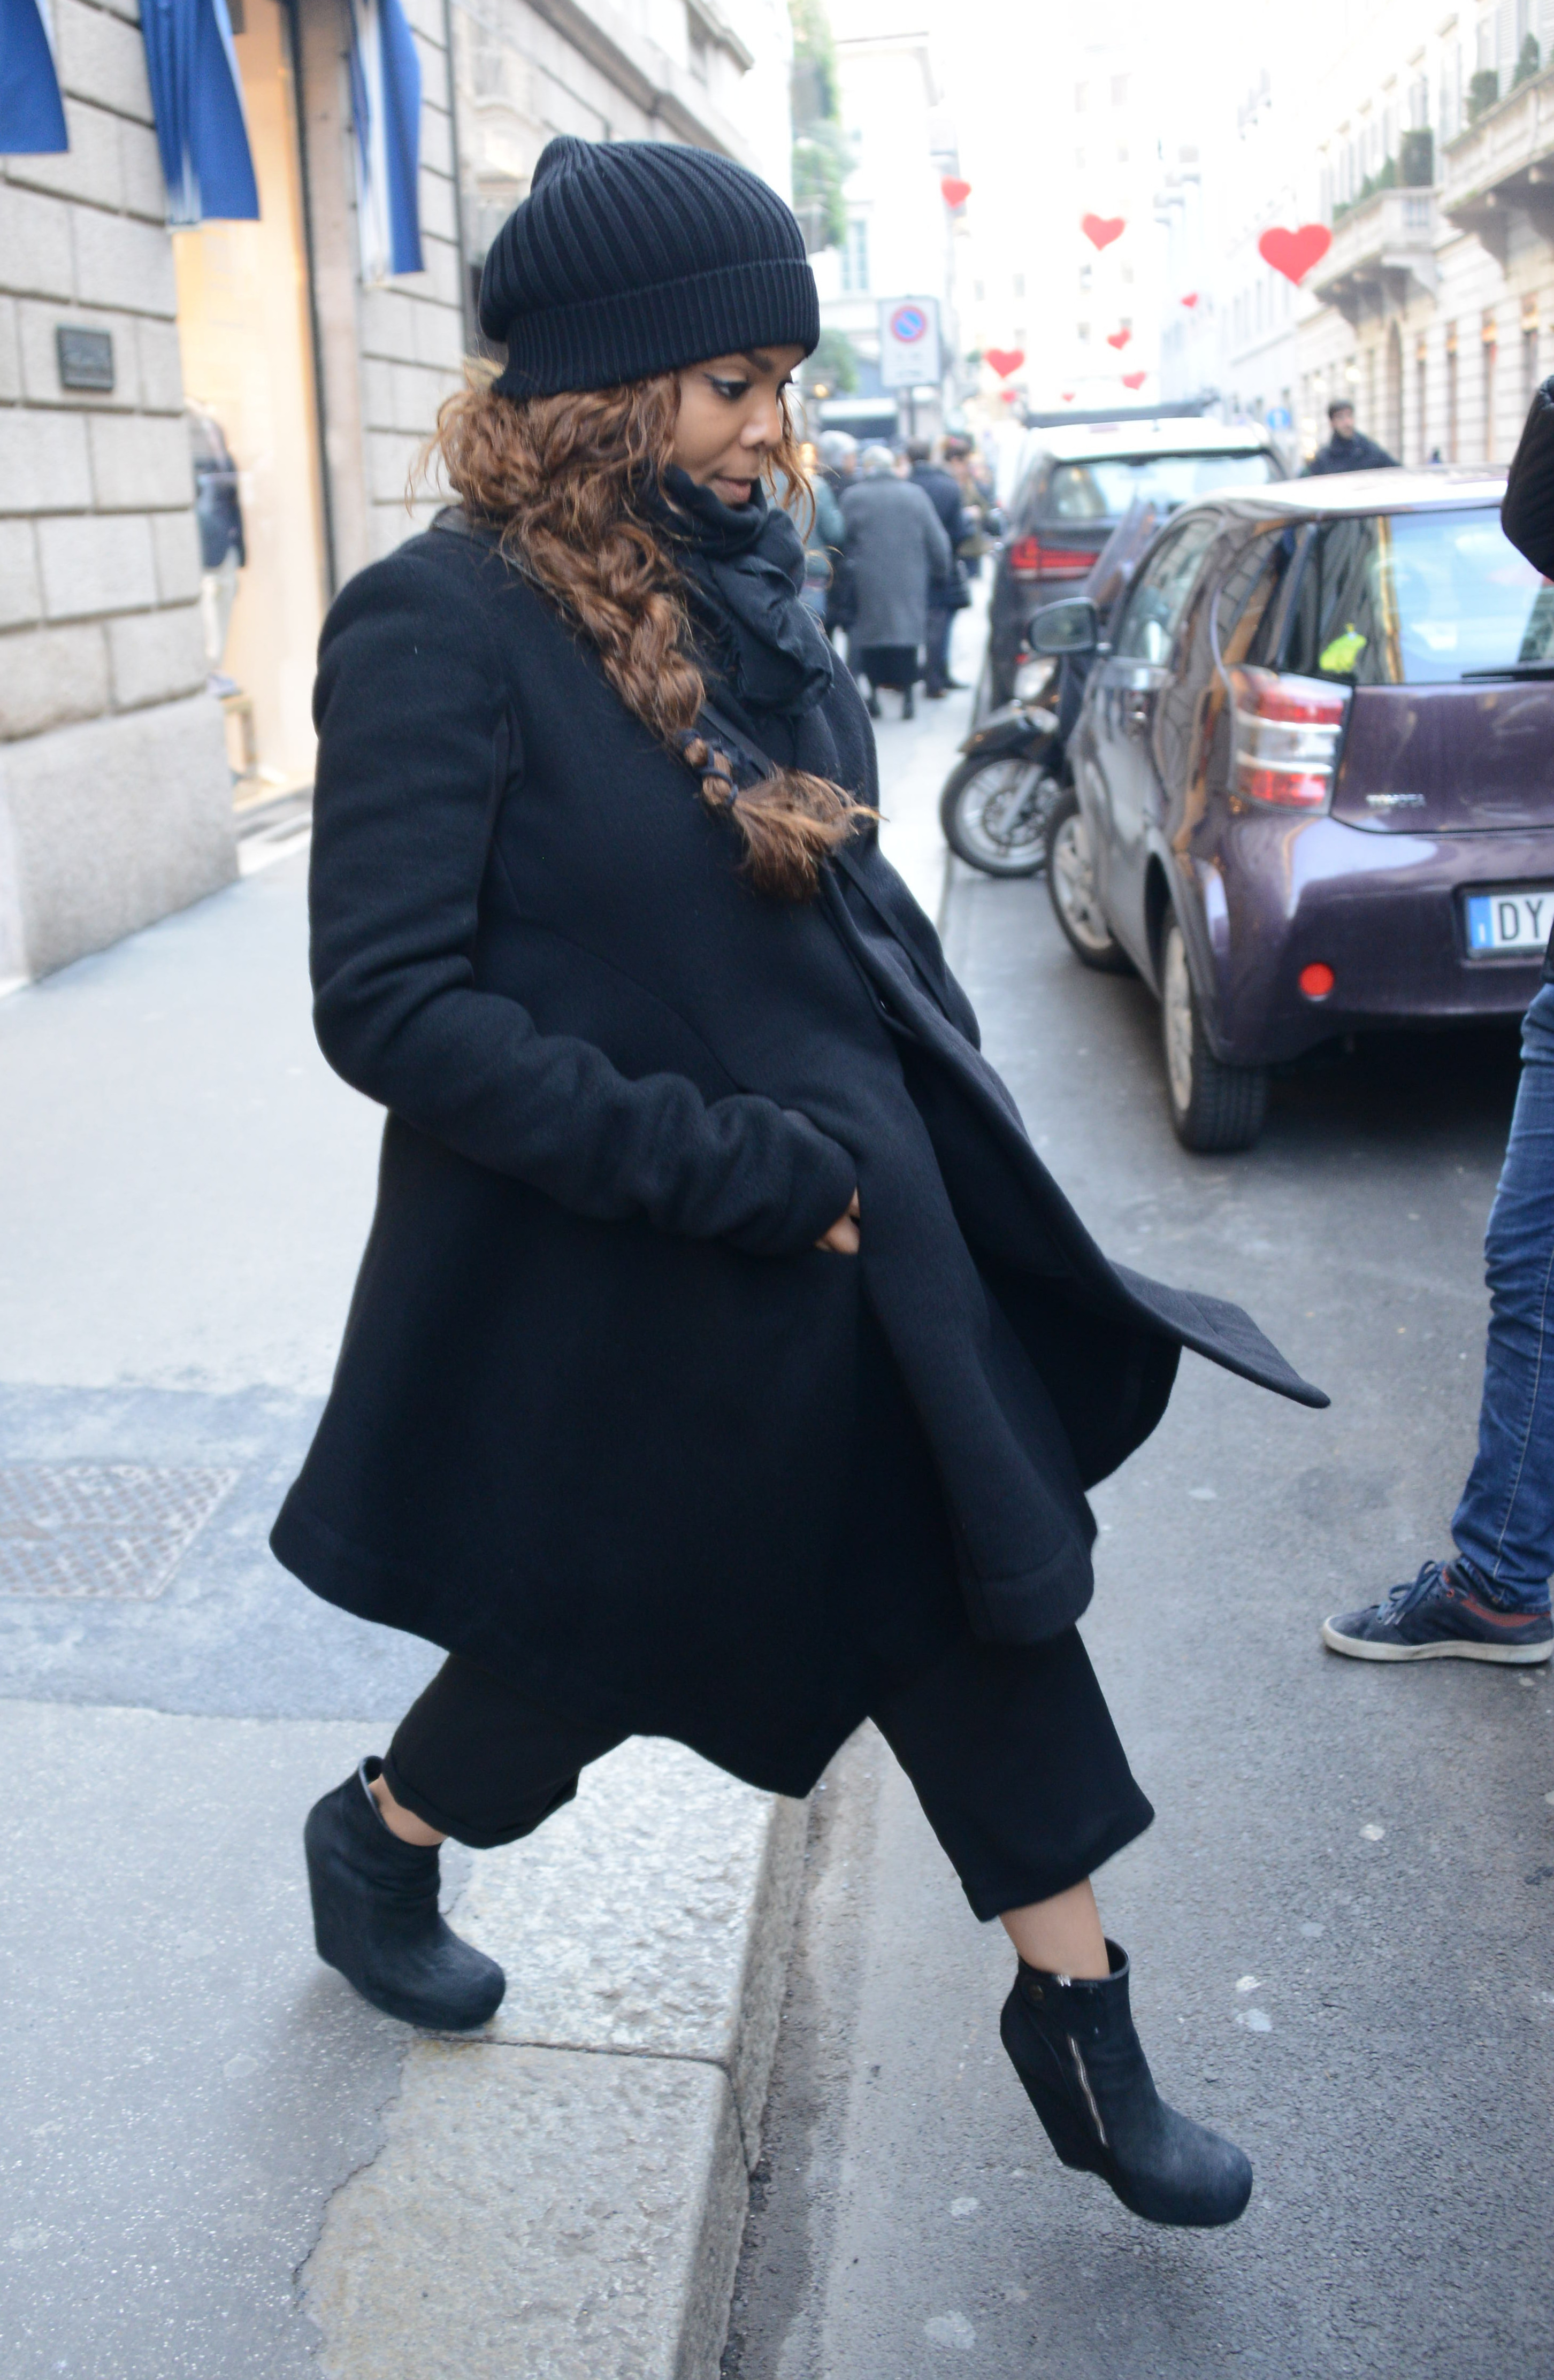 Janet Jackson resurfaces after months out of the public eye